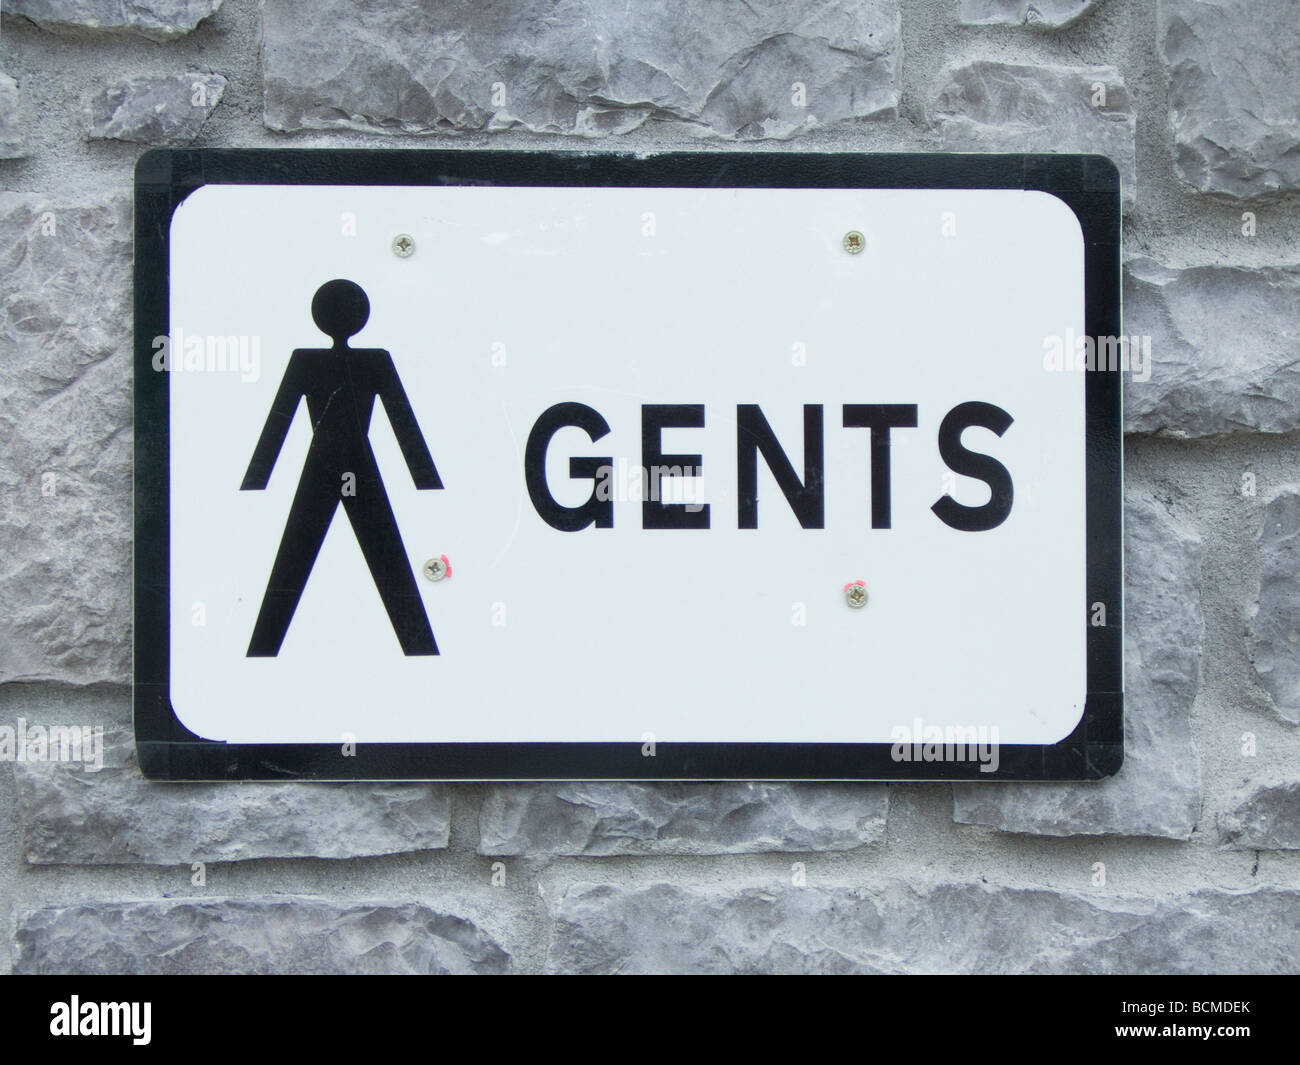 A sign for a mens (gents) public toilet - Stock Image